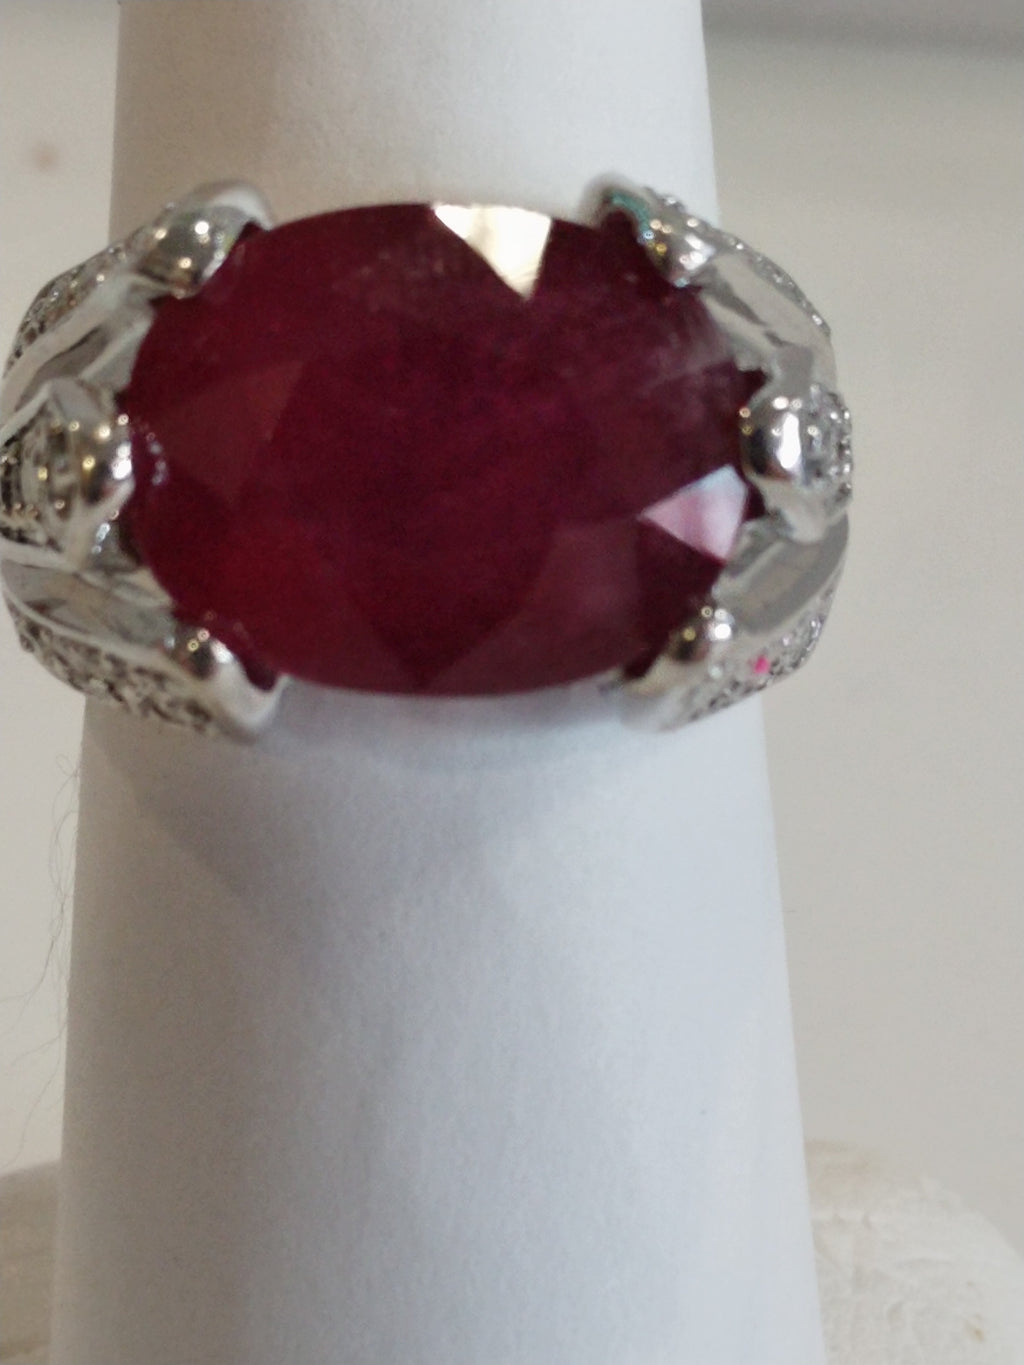 13g 14K White gold with glass filled Ruby with I3 0.6cttw